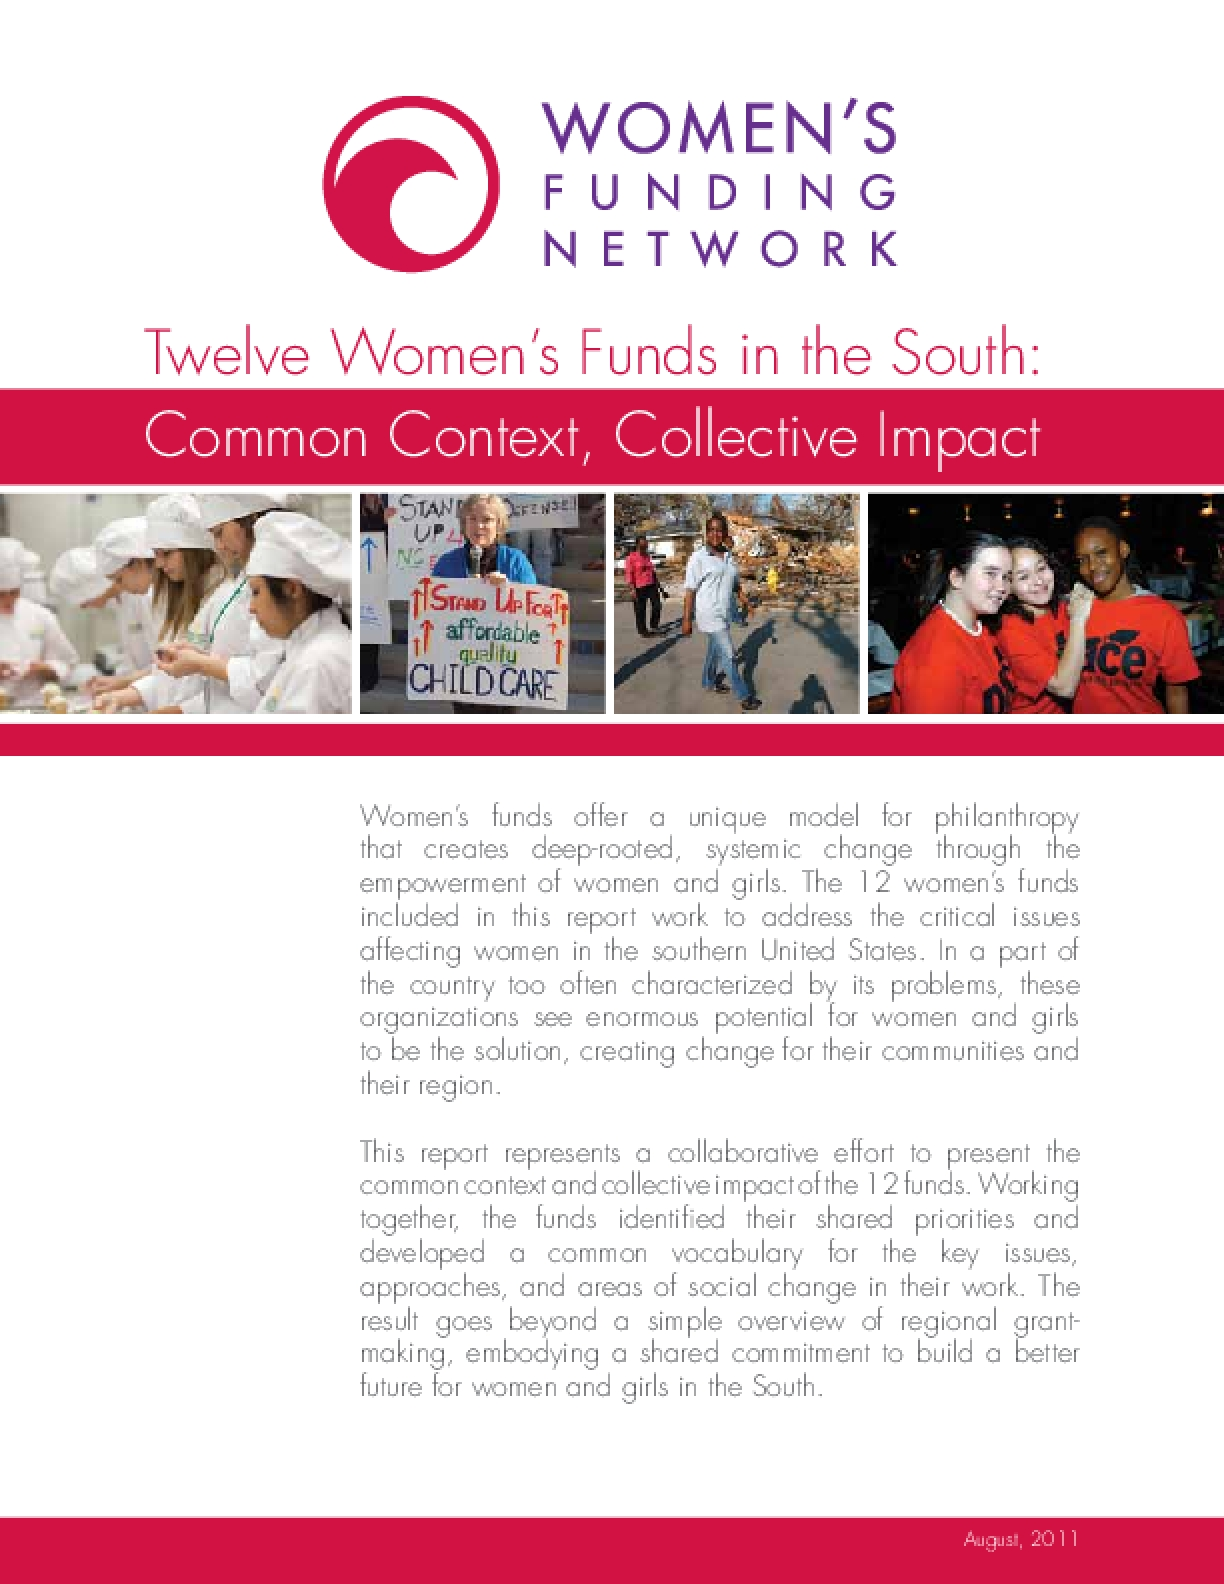 Twelve Women's Funds in the South: Common Context, Collective Impact